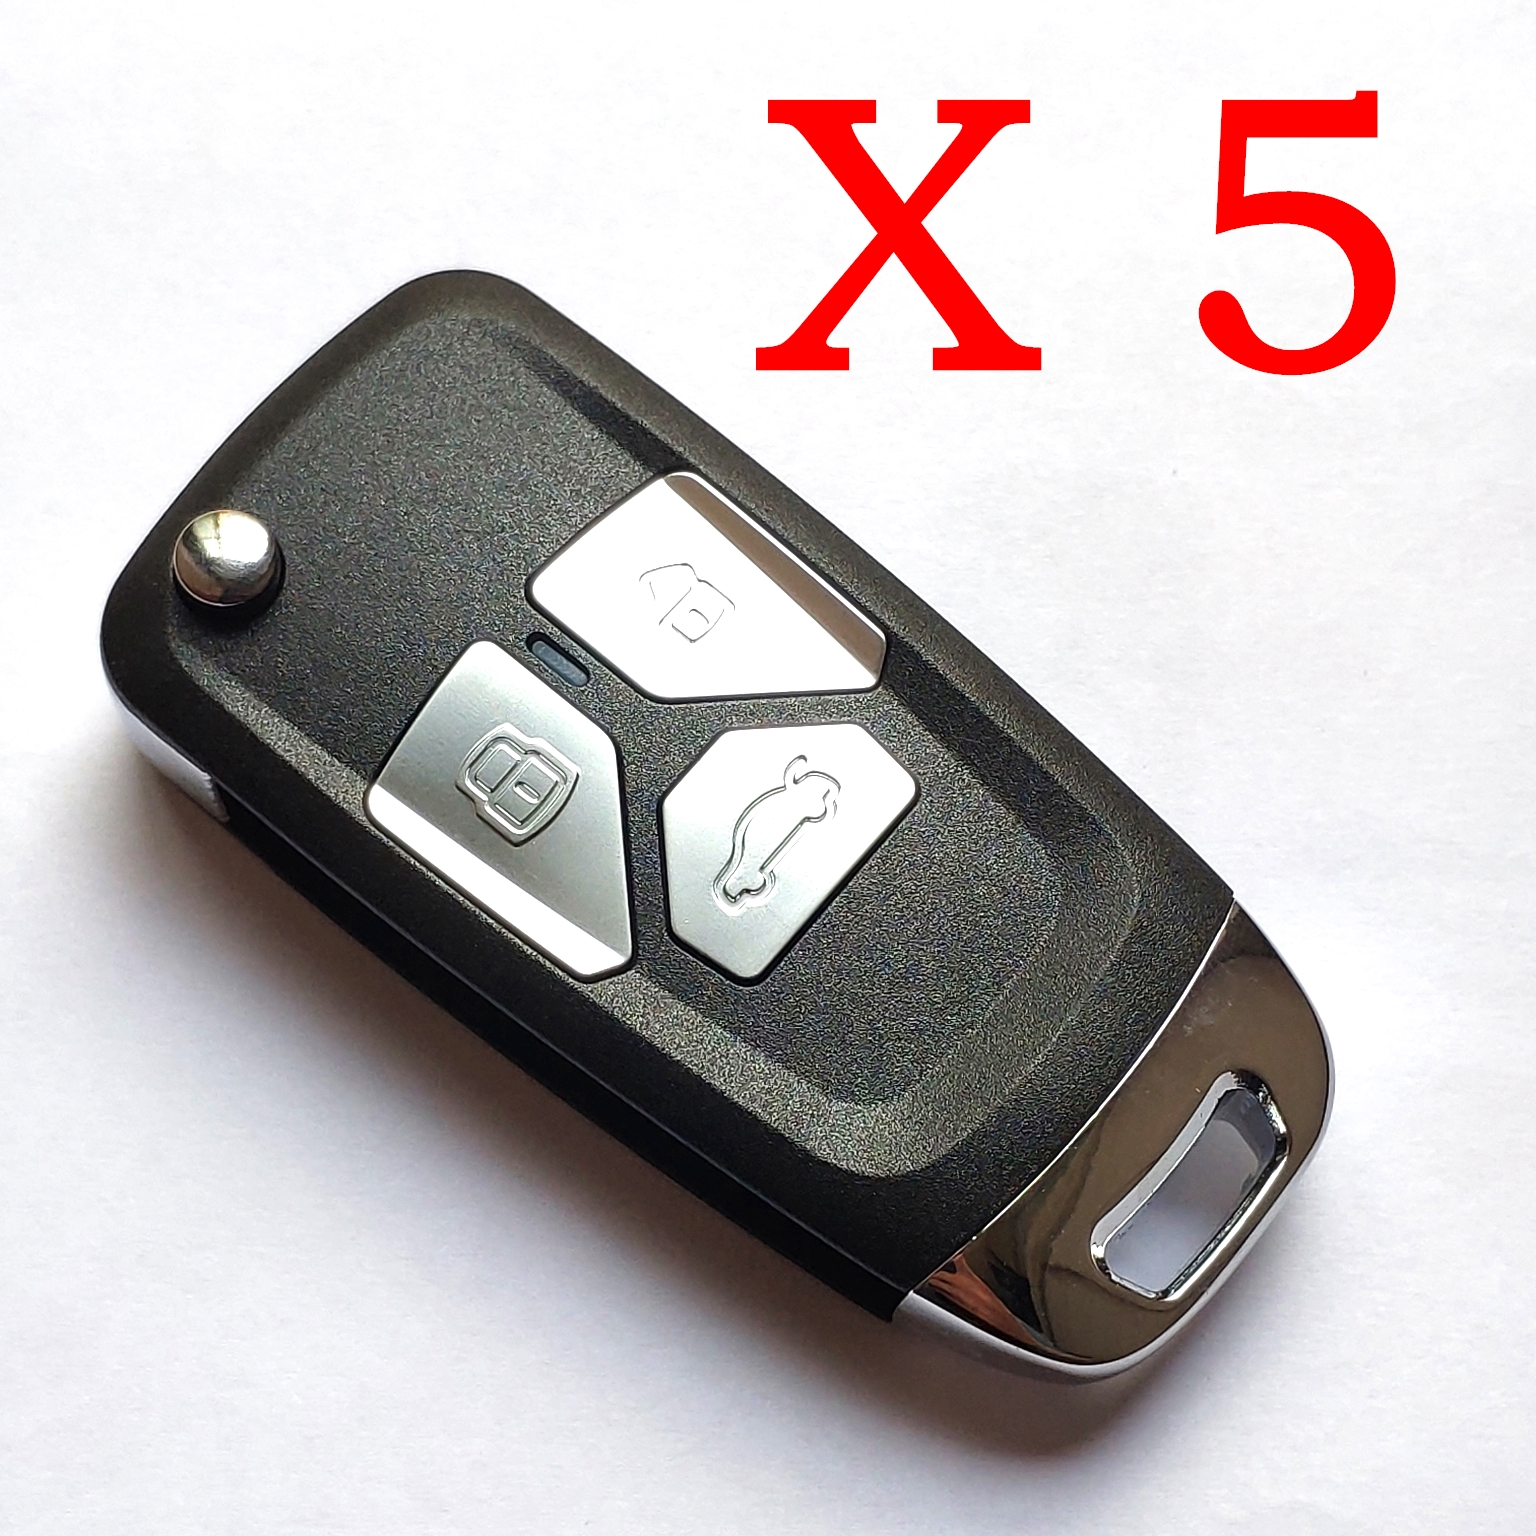 5 pieces Xhorse VVDI Audi Type 1 Universal Remote Control